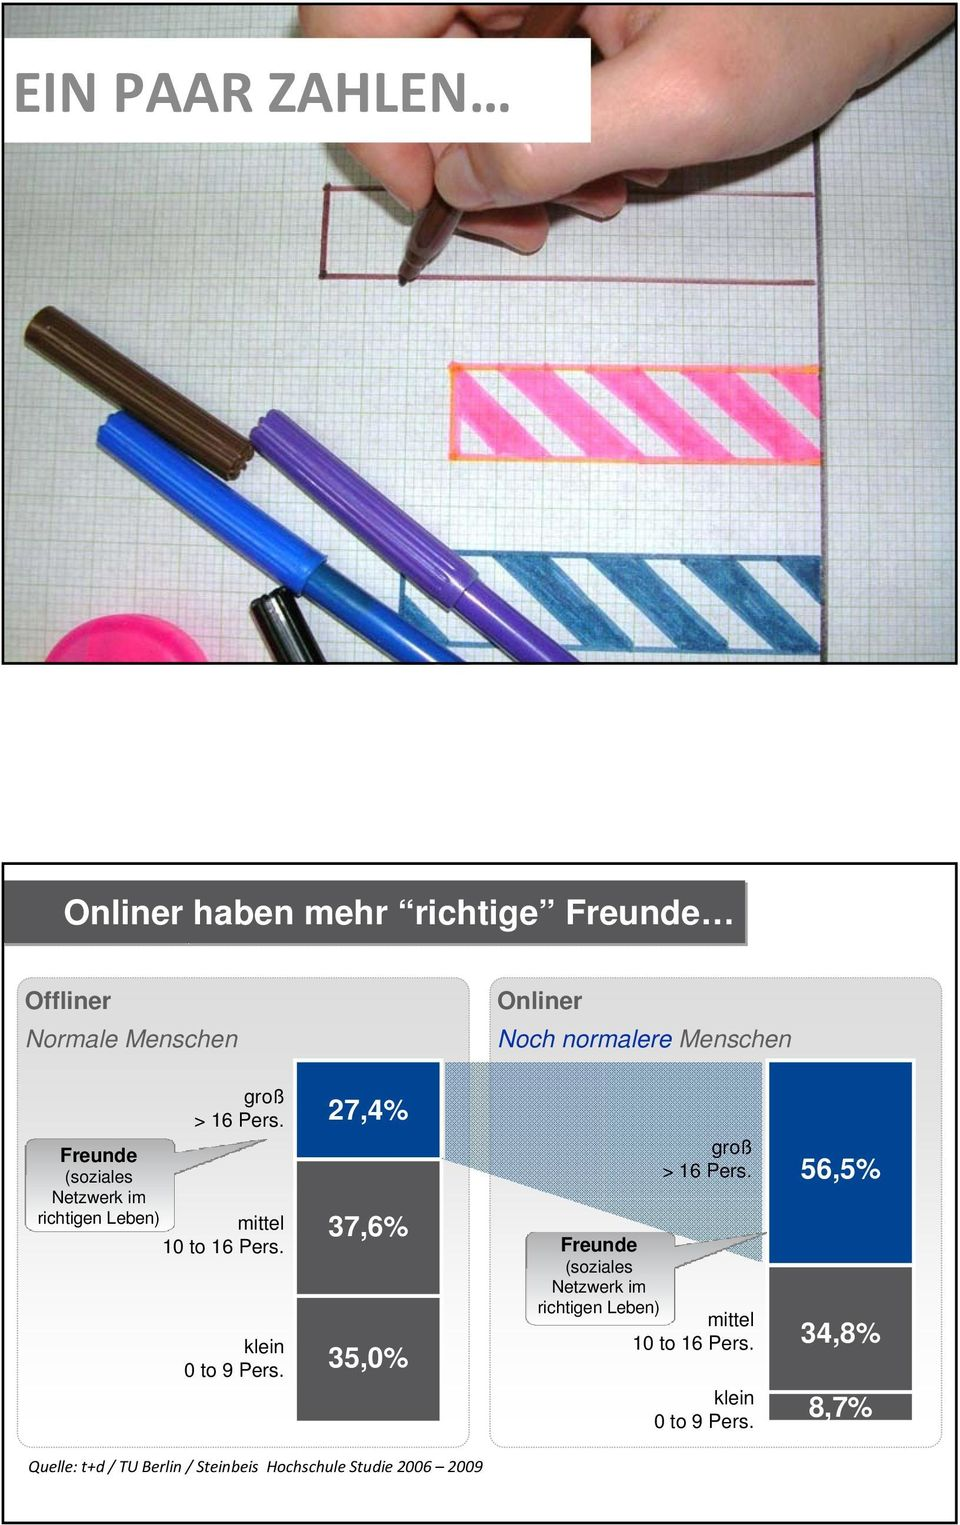 klein 0 to 9 Pers. 27,4% 37,6% 35,0% groß > 16 Pers.